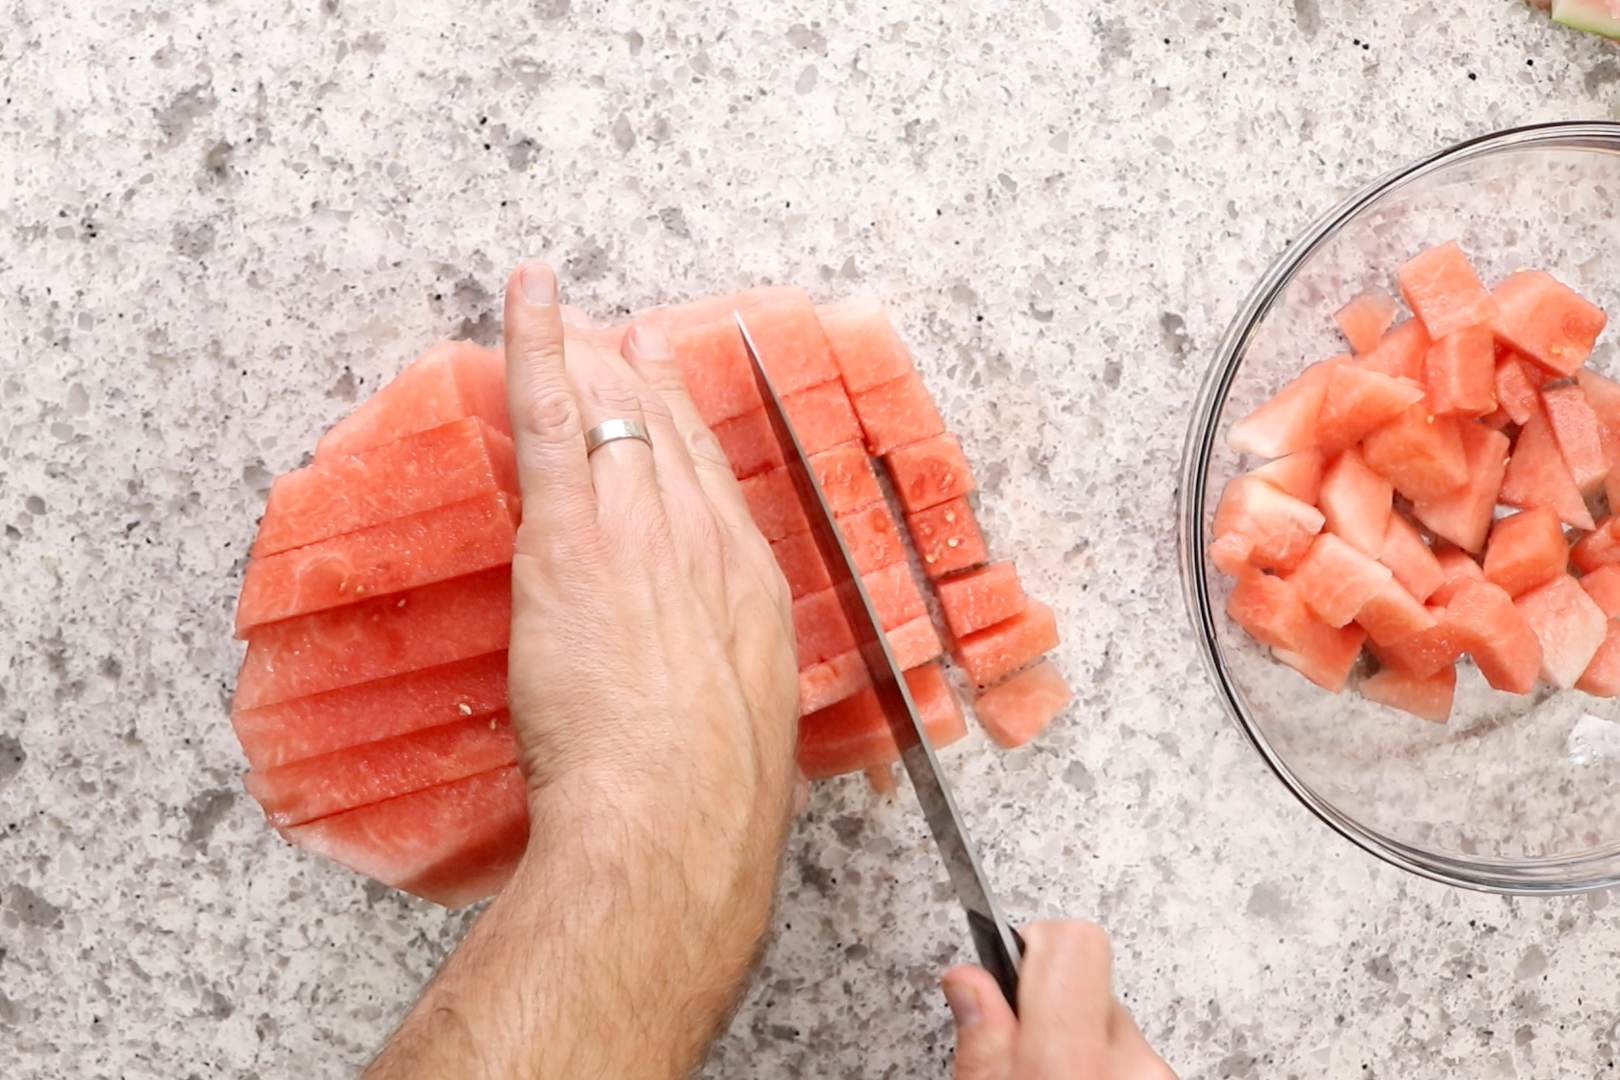 1. Cut watermelon into small pieces and measure out 3 cups.  -